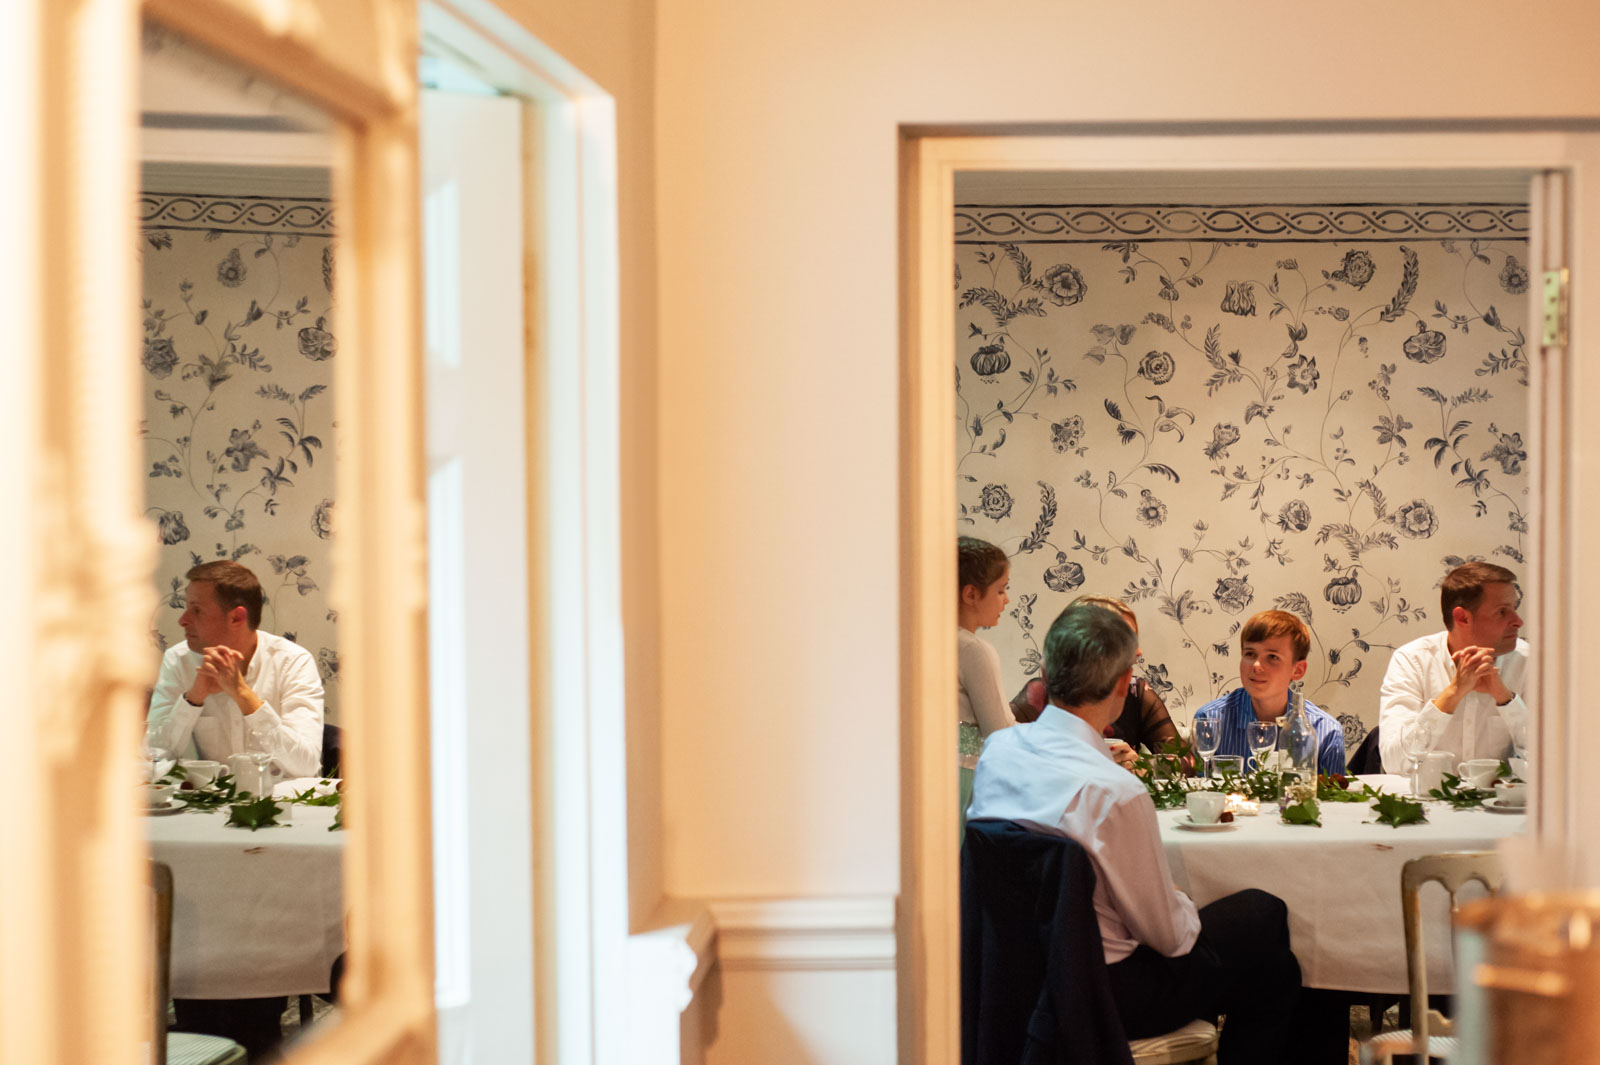 Wedding guests at table reflected in mirror